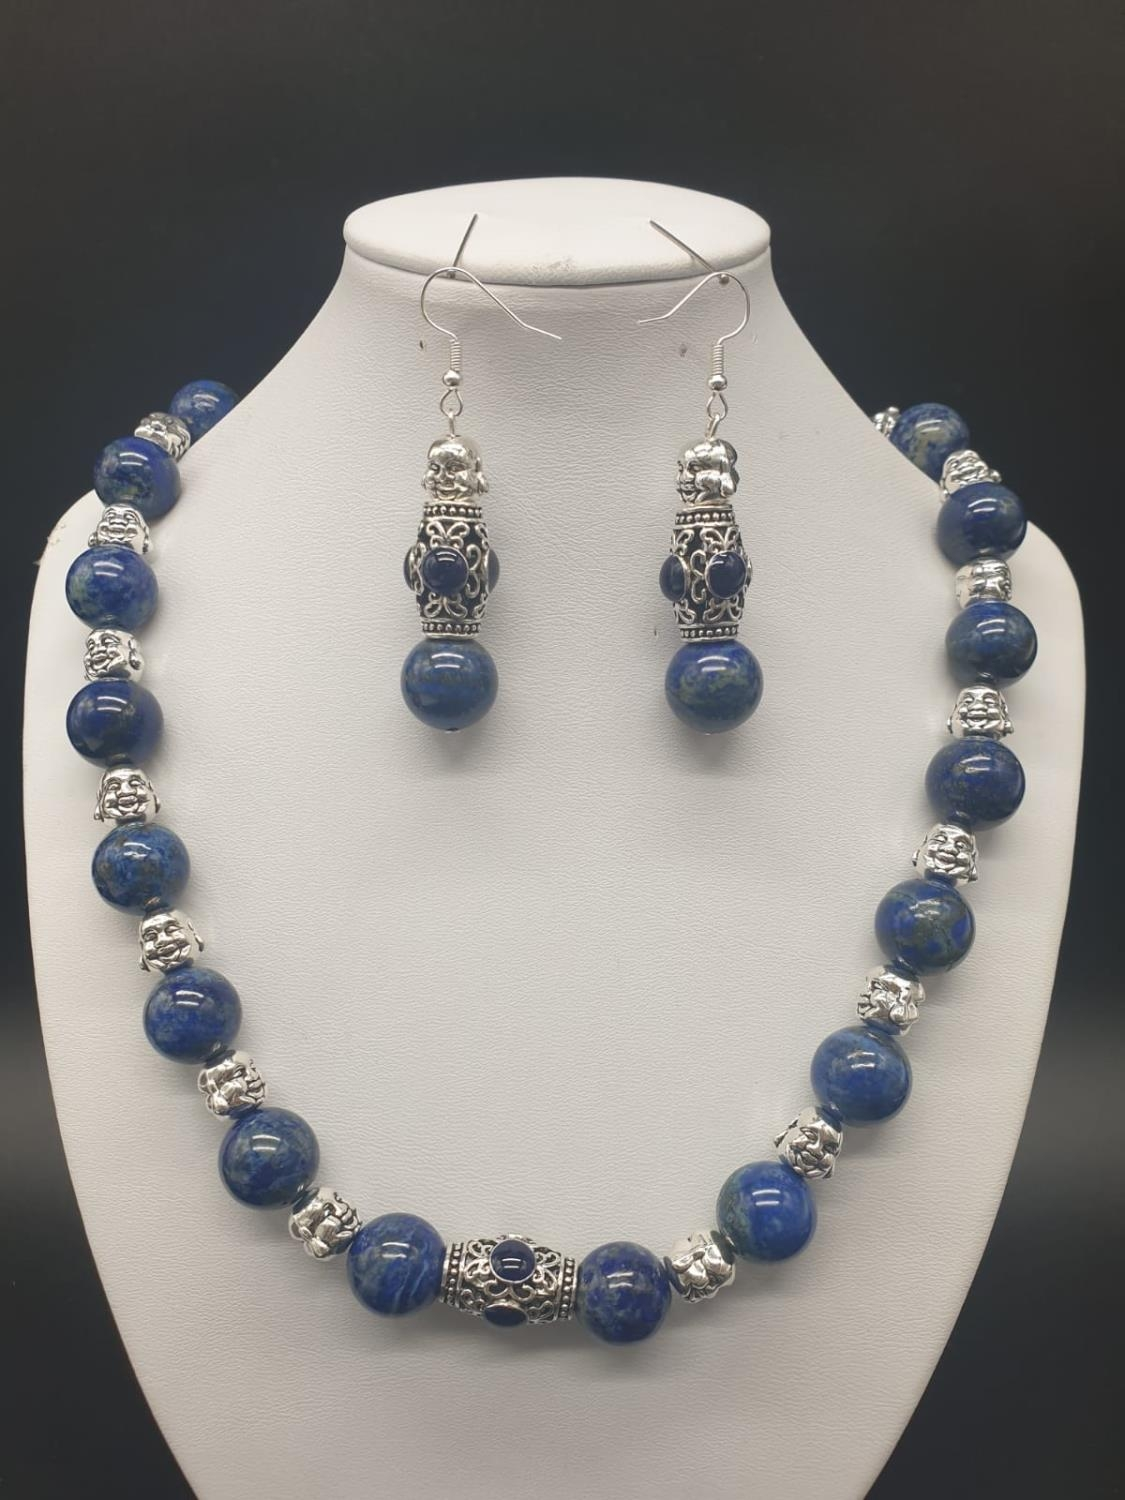 A Tibetan Buddhist lapis lazuli necklace and earrings set in a presentation box. Necklace length: